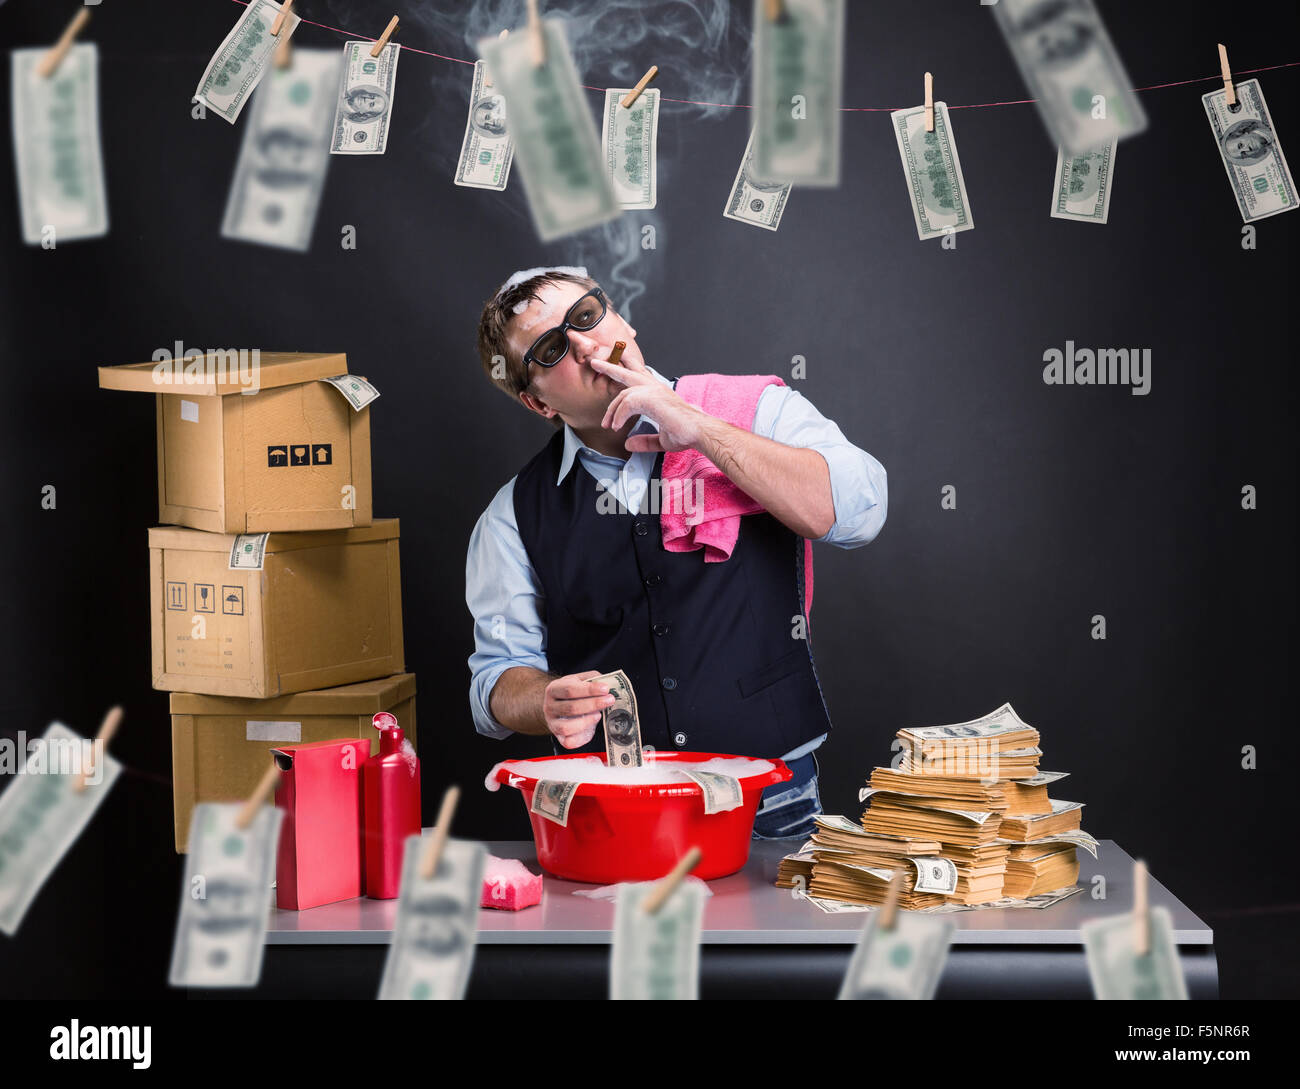 Smoking businessman is laundering money in the basement - Stock Image